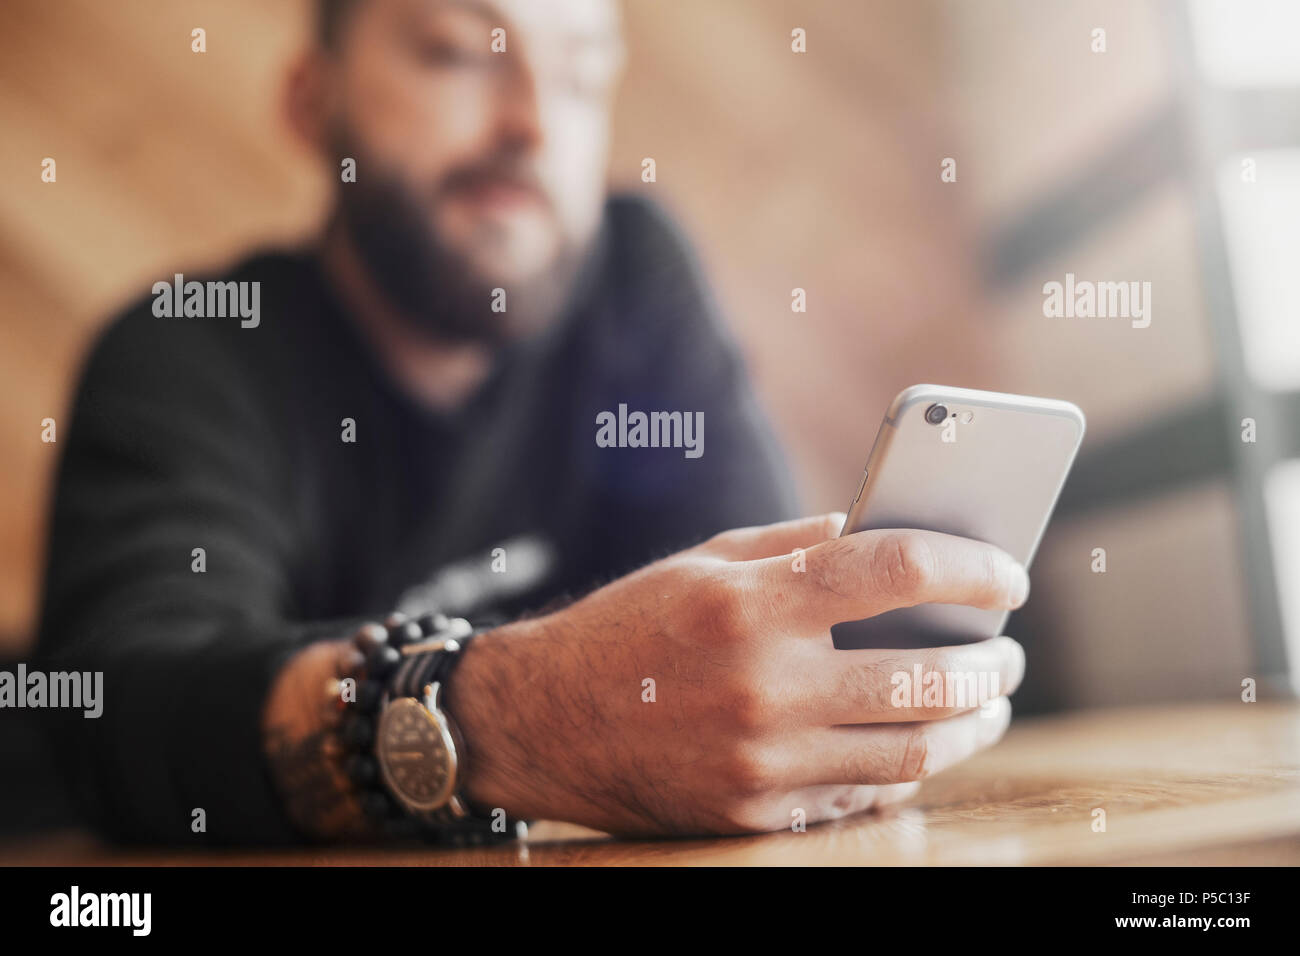 Young tattooed man holding mobile phone in right hand close up. Stock Photo